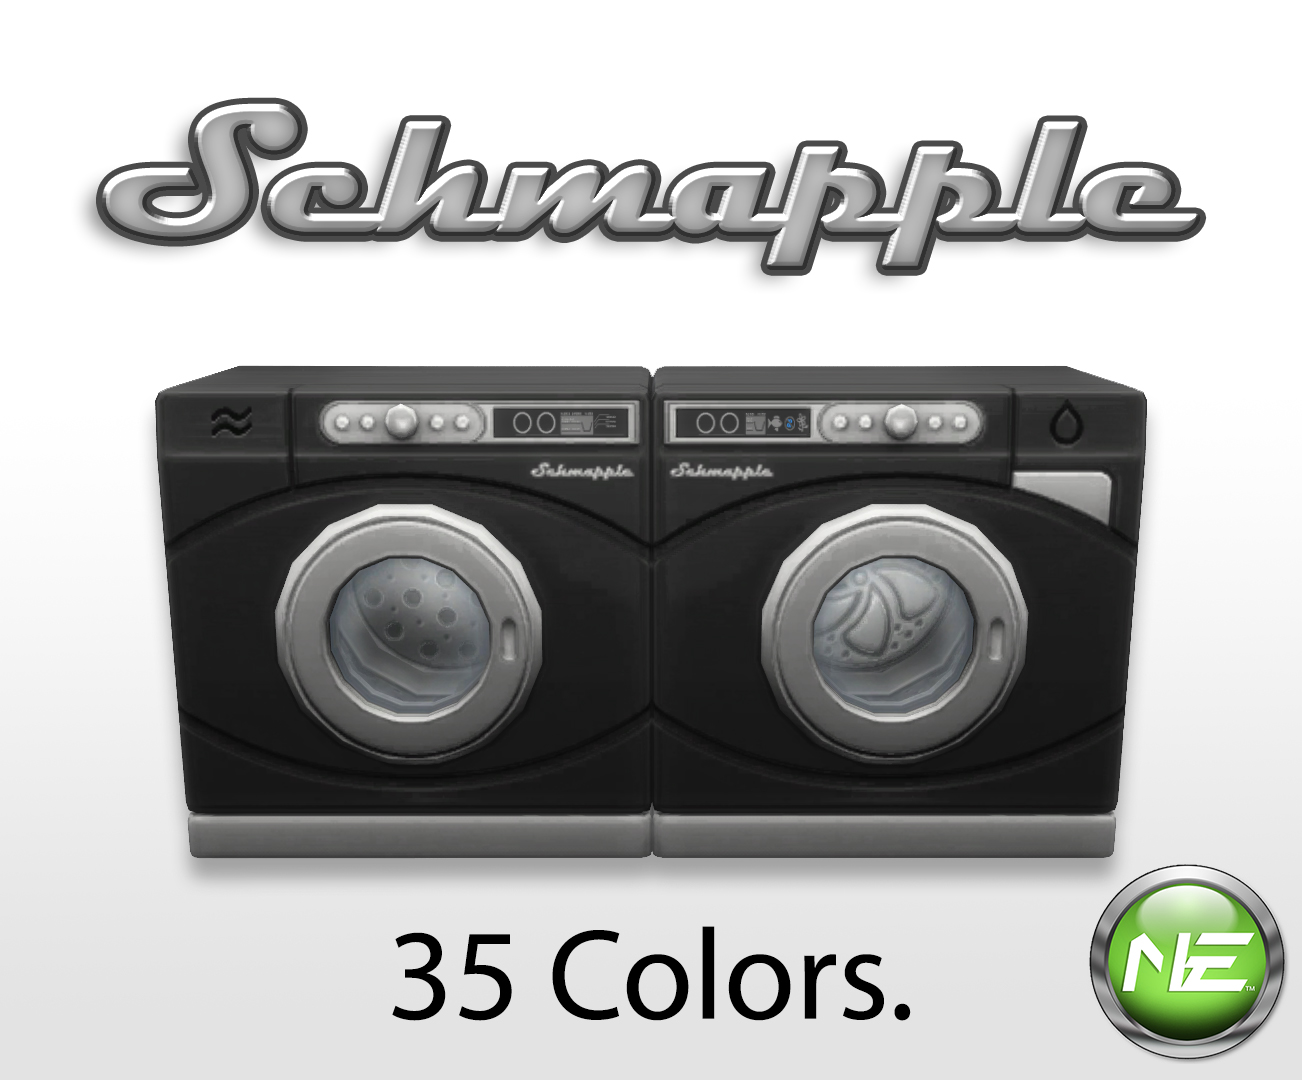 New Washer And Dryer Mod The Sims Schmapple Washer Dryer Overhaul 35 Colors